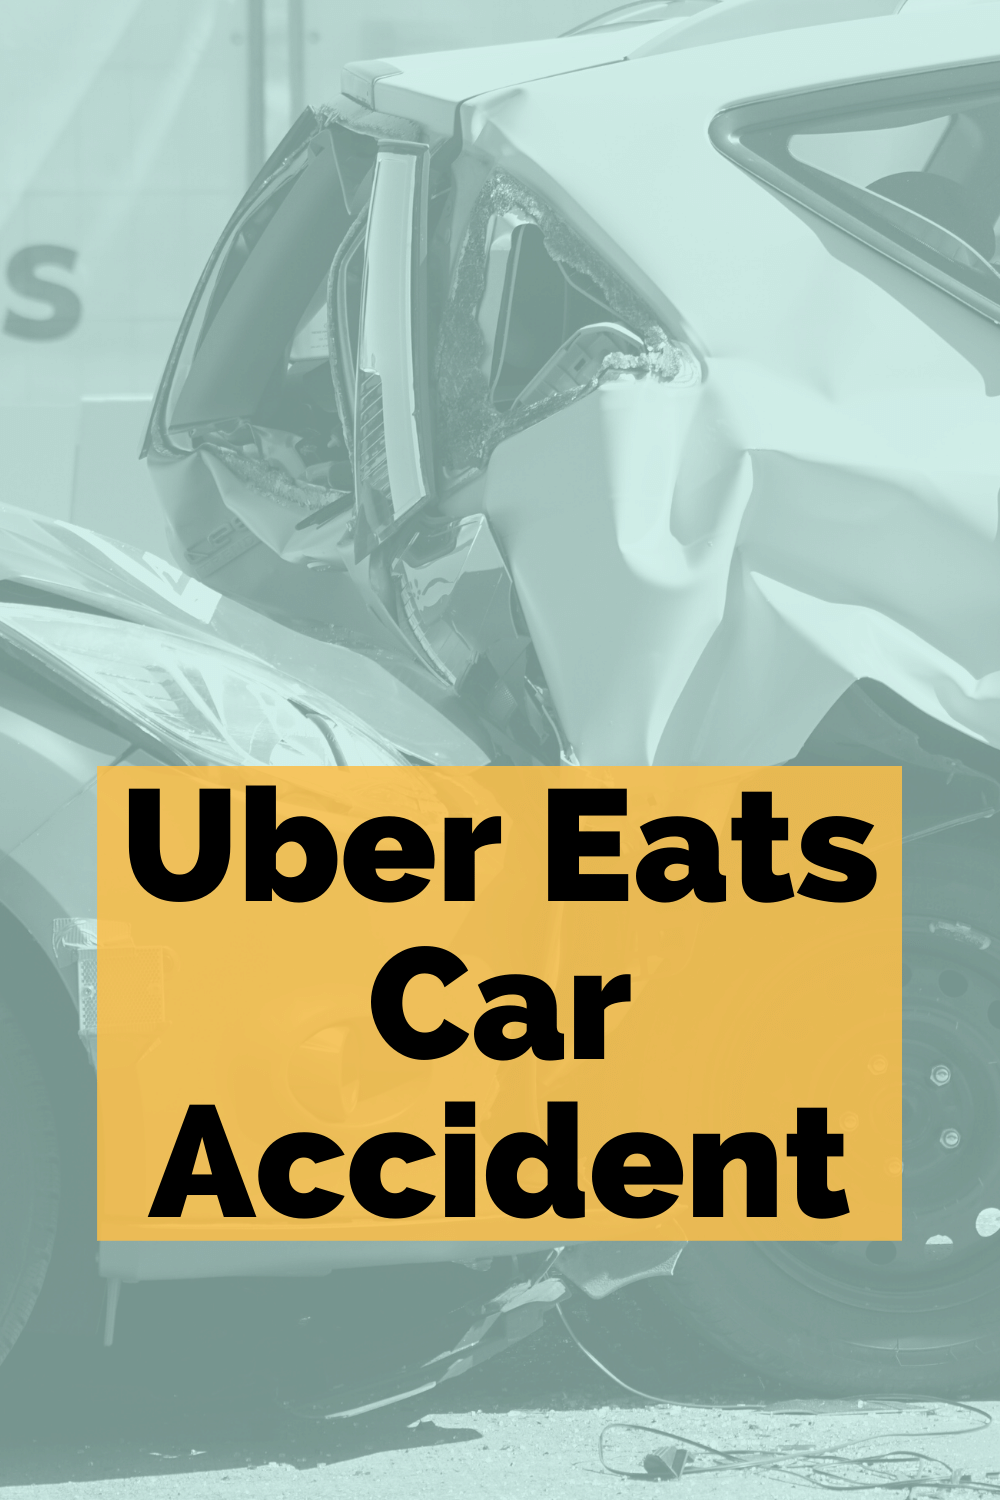 Uber Eats Car Accident: What You Need To Know